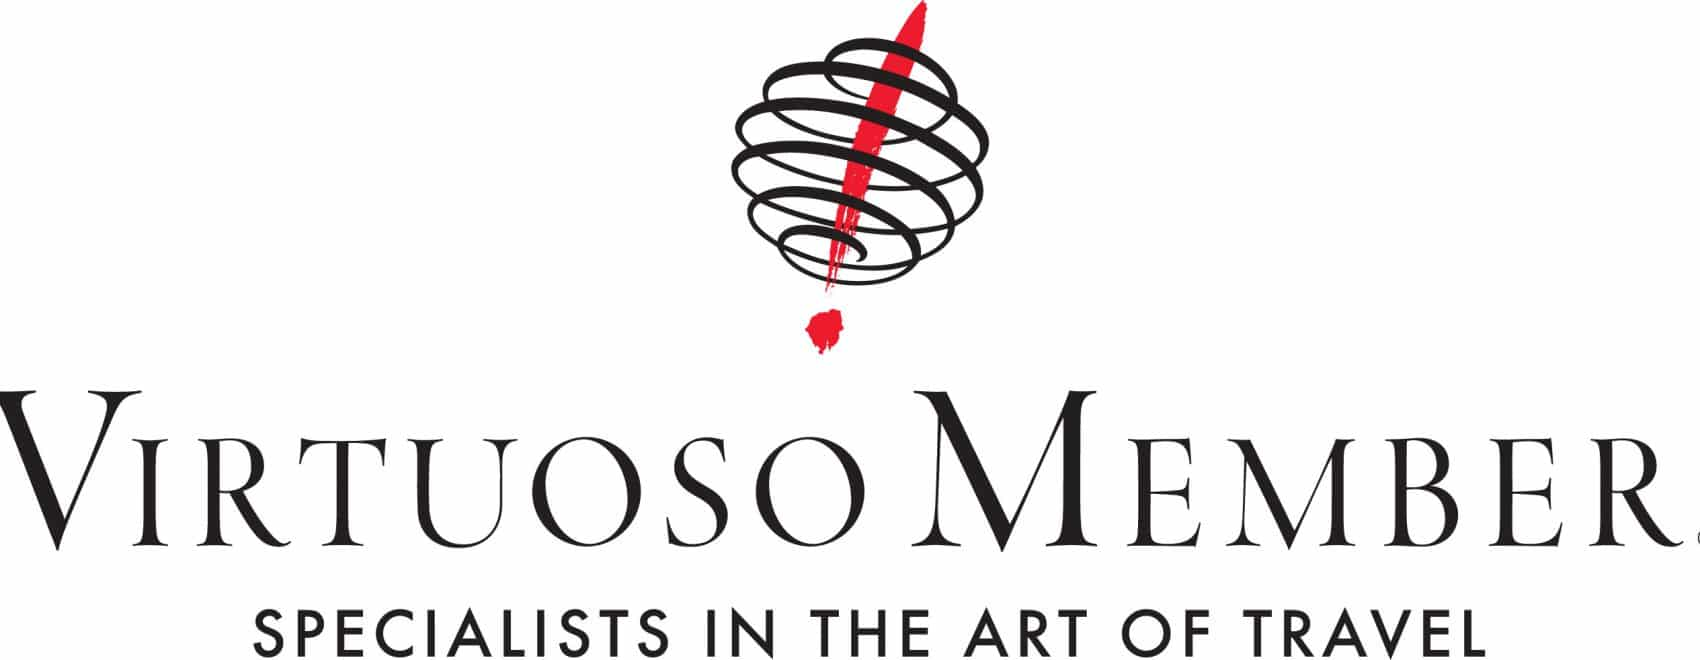 VIRTUOSO MEMBER - Specialists in the Art of Travel